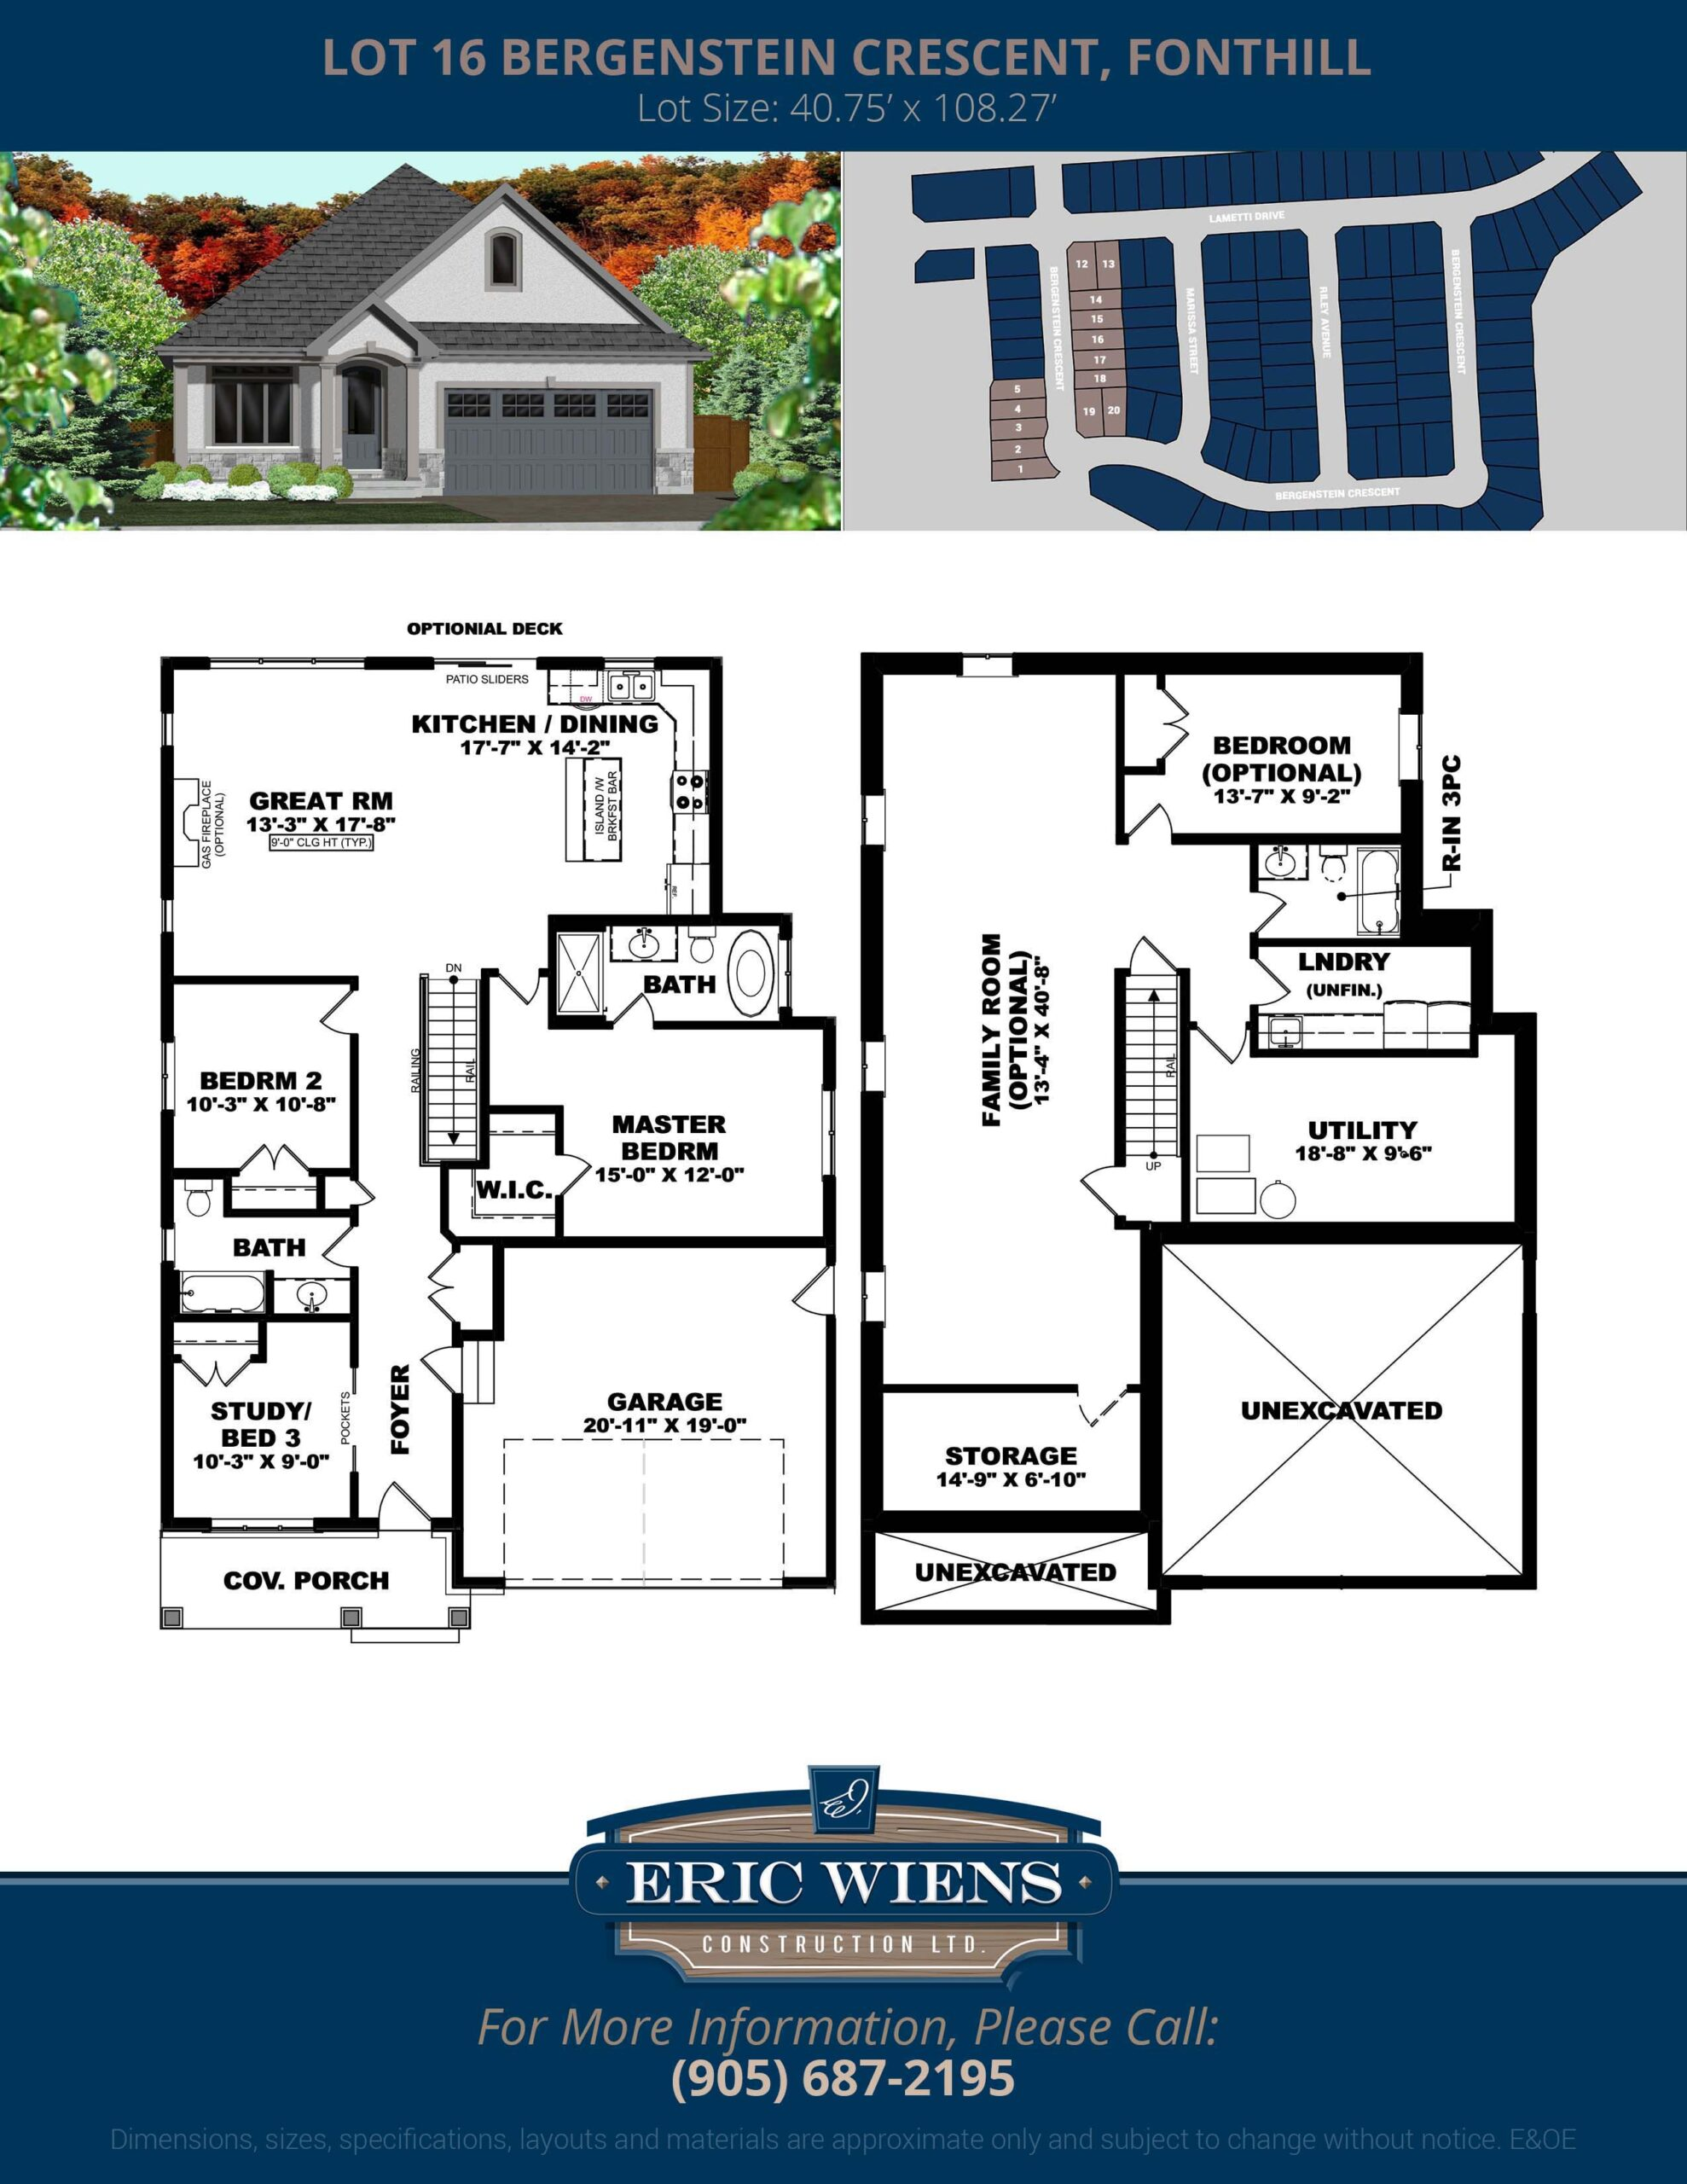 Lot 16 Bergenstein Crescent Floor Plan